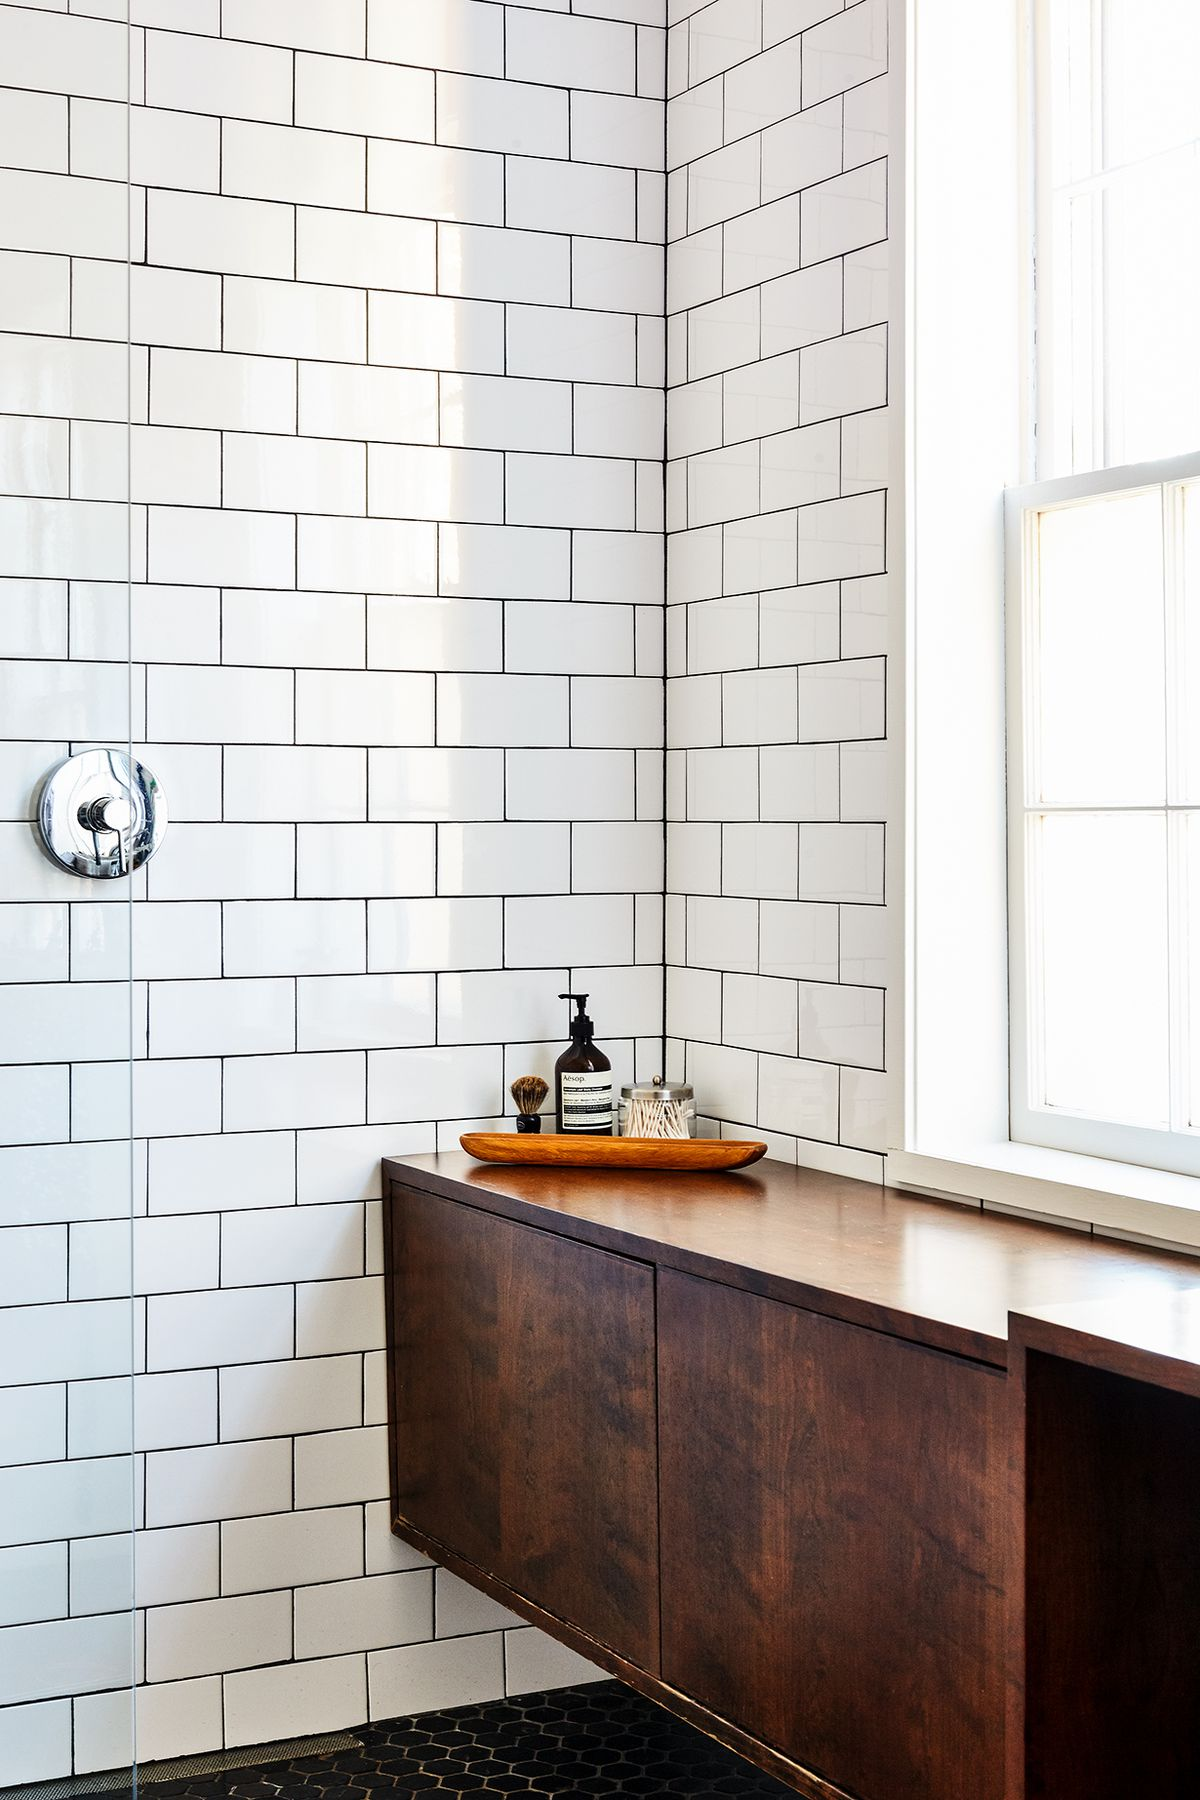 The corner of a bathroom. There are white tiles on the wall and wooden cabinetry. There is a window letting in natural light.